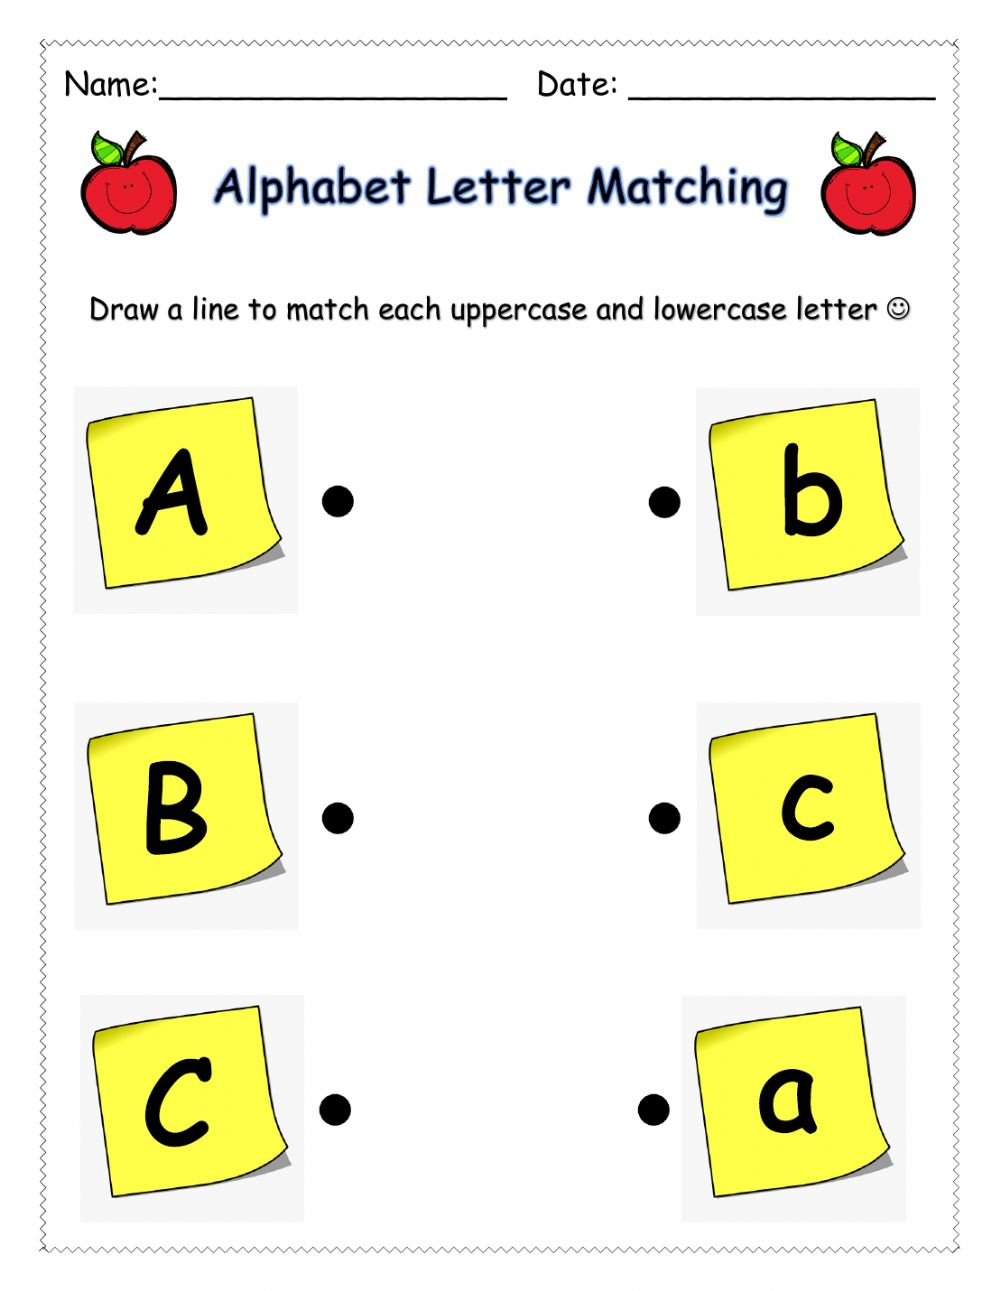 medium resolution of Letter Matching (ABC) worksheet